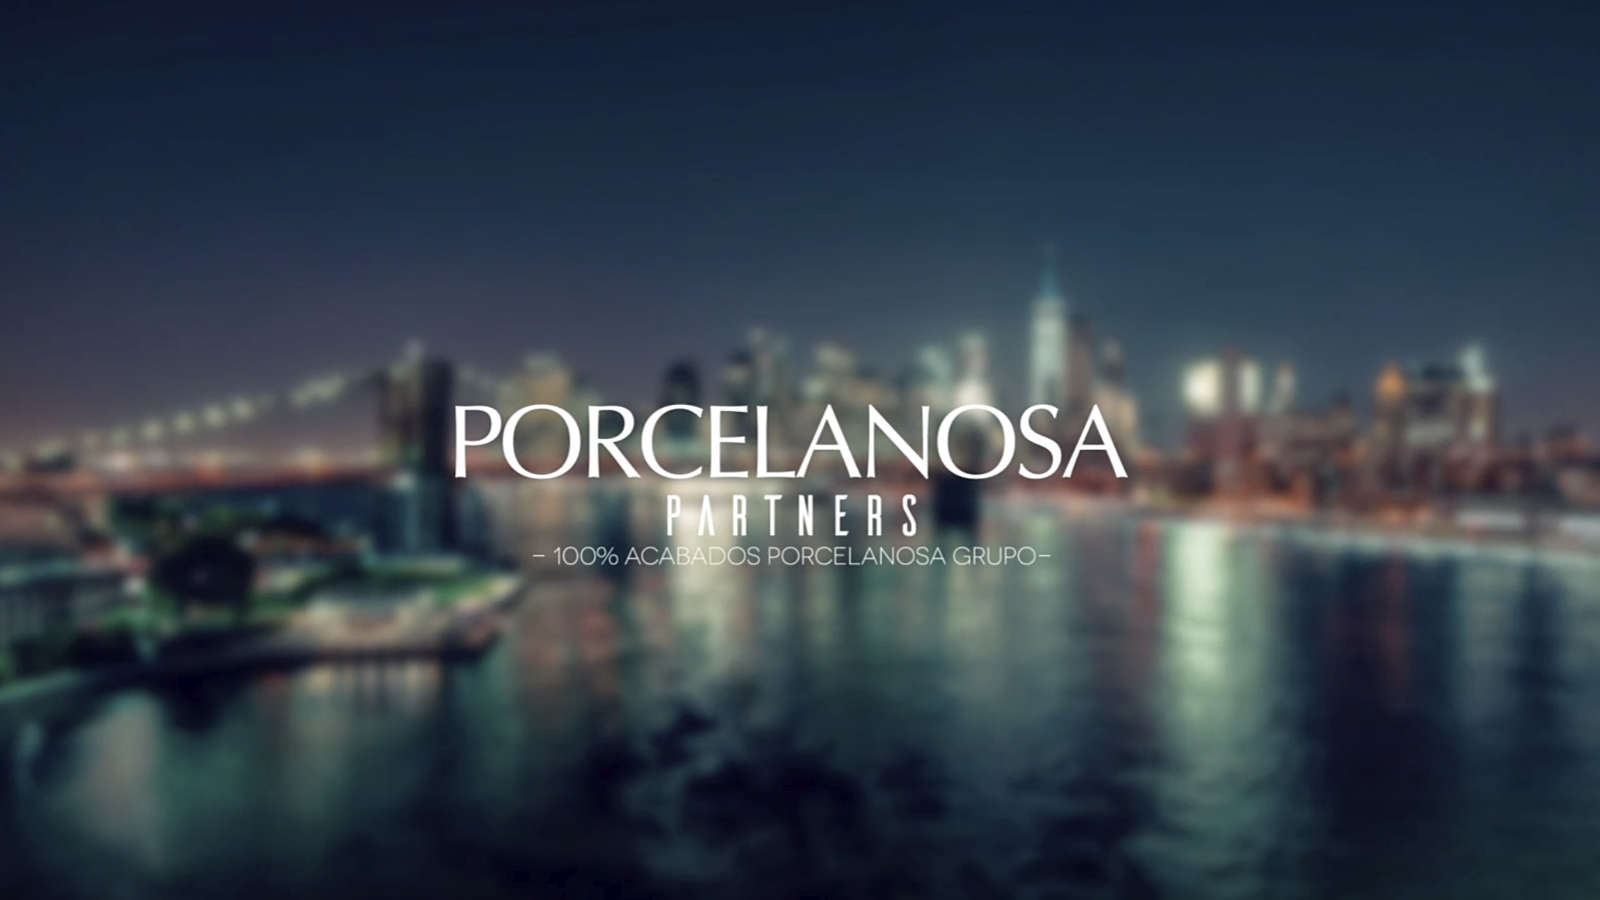 PORCELANOSA Partners